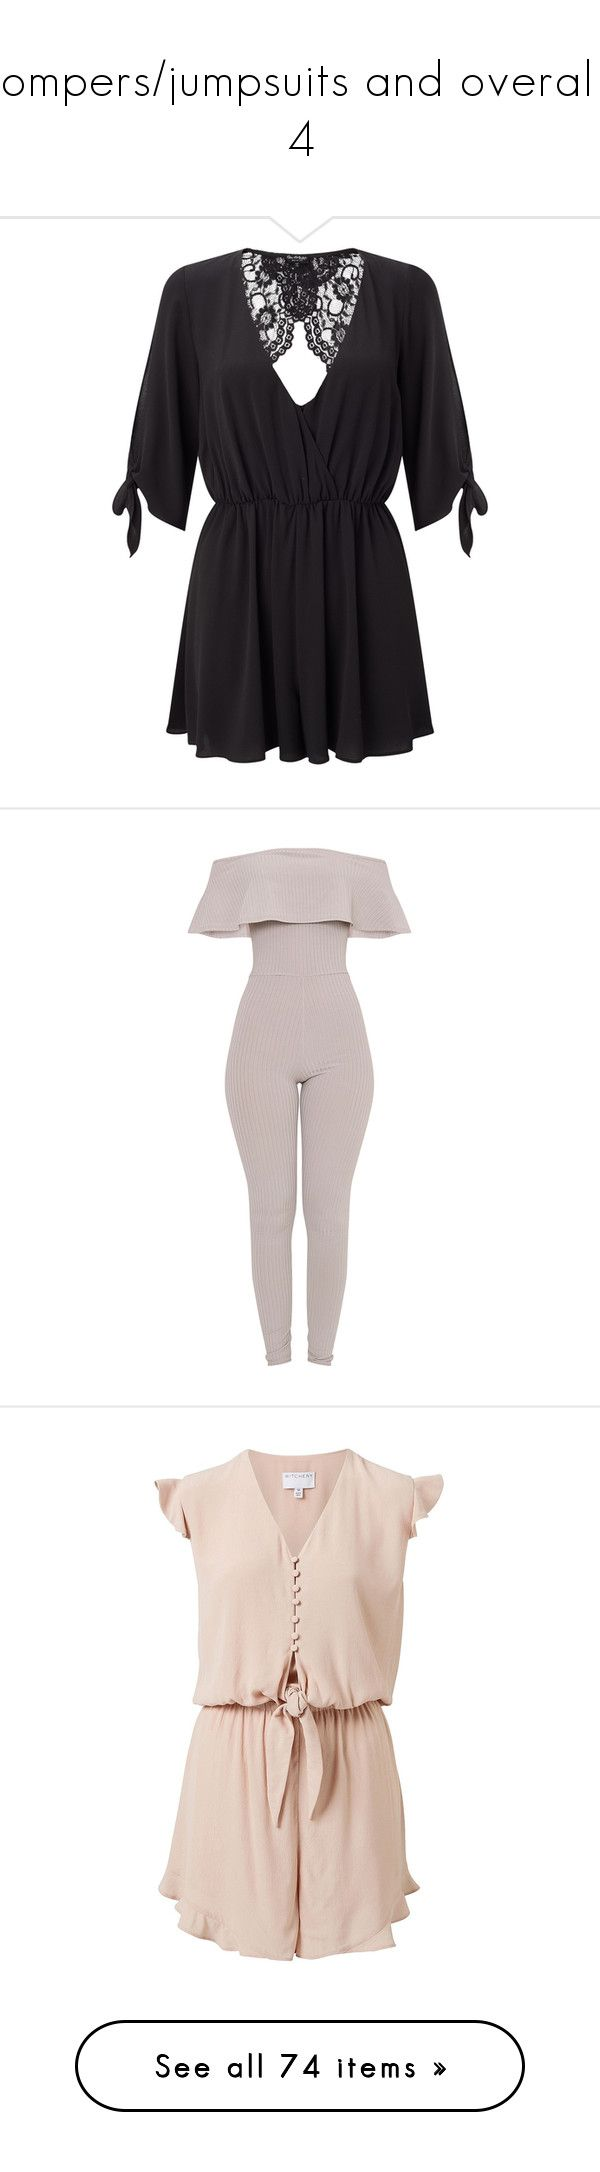 """""""Rompers/jumpsuits and overalls 4"""" by musicmelody1 on Polyvore featuring jumpsuits, rompers, petite, playsuit romper, long-sleeve romper, tie-dye rompers, v neck romper, miss selfridge, gray jumpsuits and ribbed jumpsuit"""